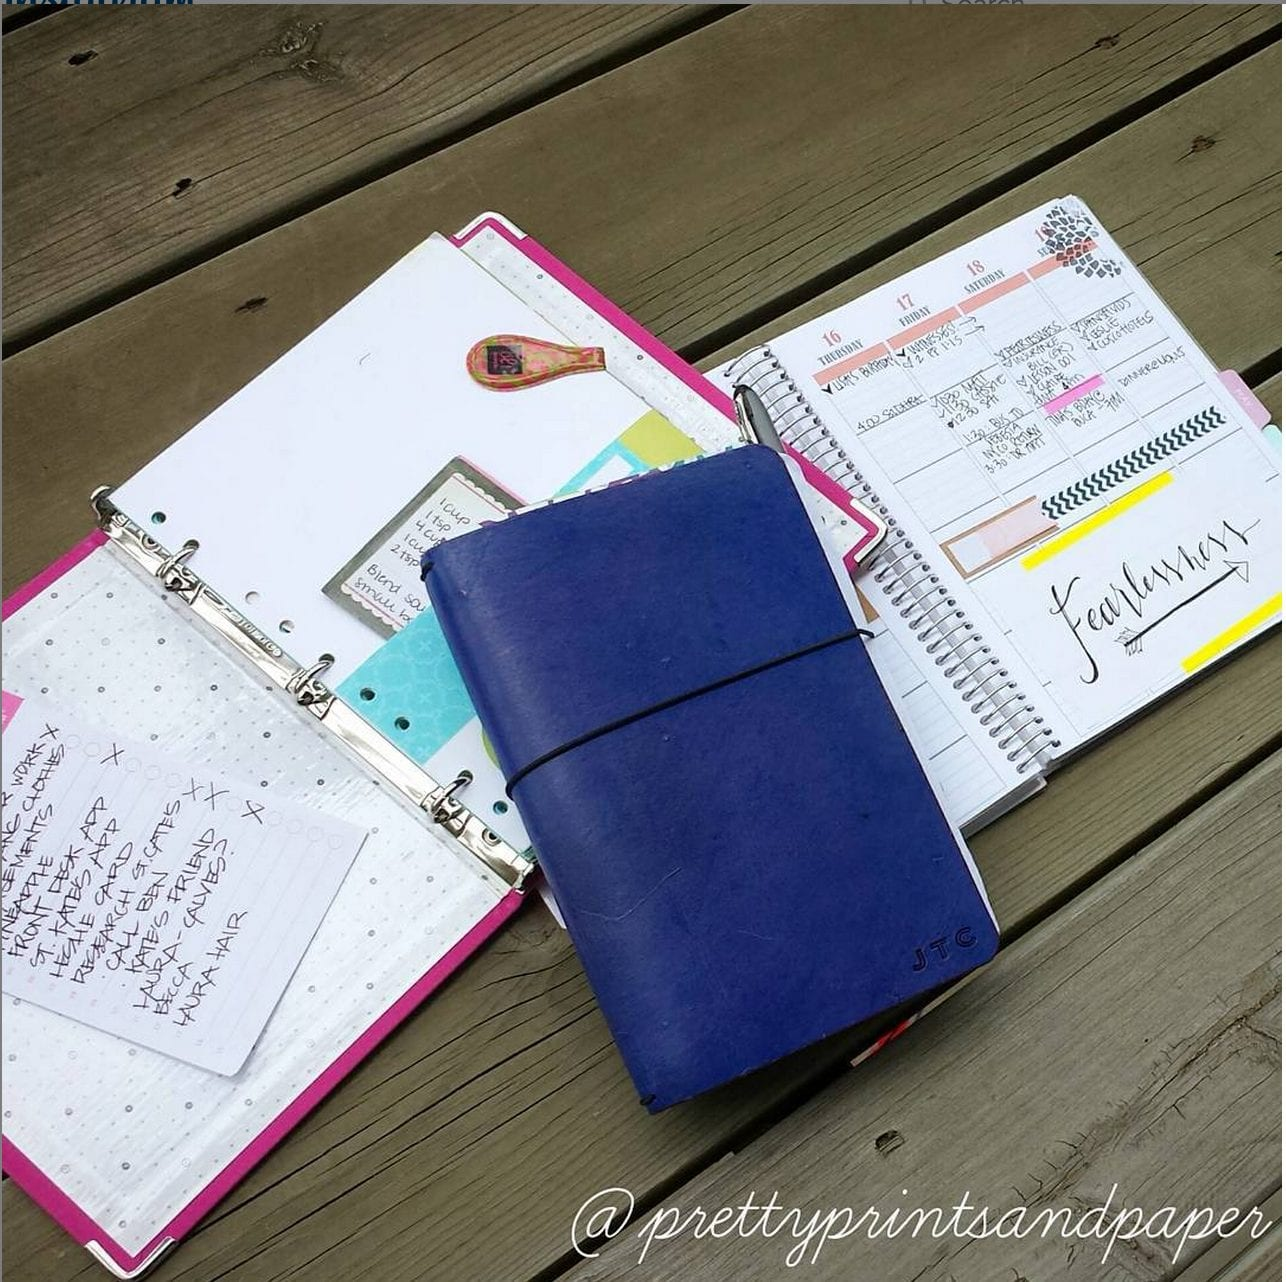 I've experimented with so many types of planners over the years - ringed, spiral bound, and now the Traveler's Notebook.